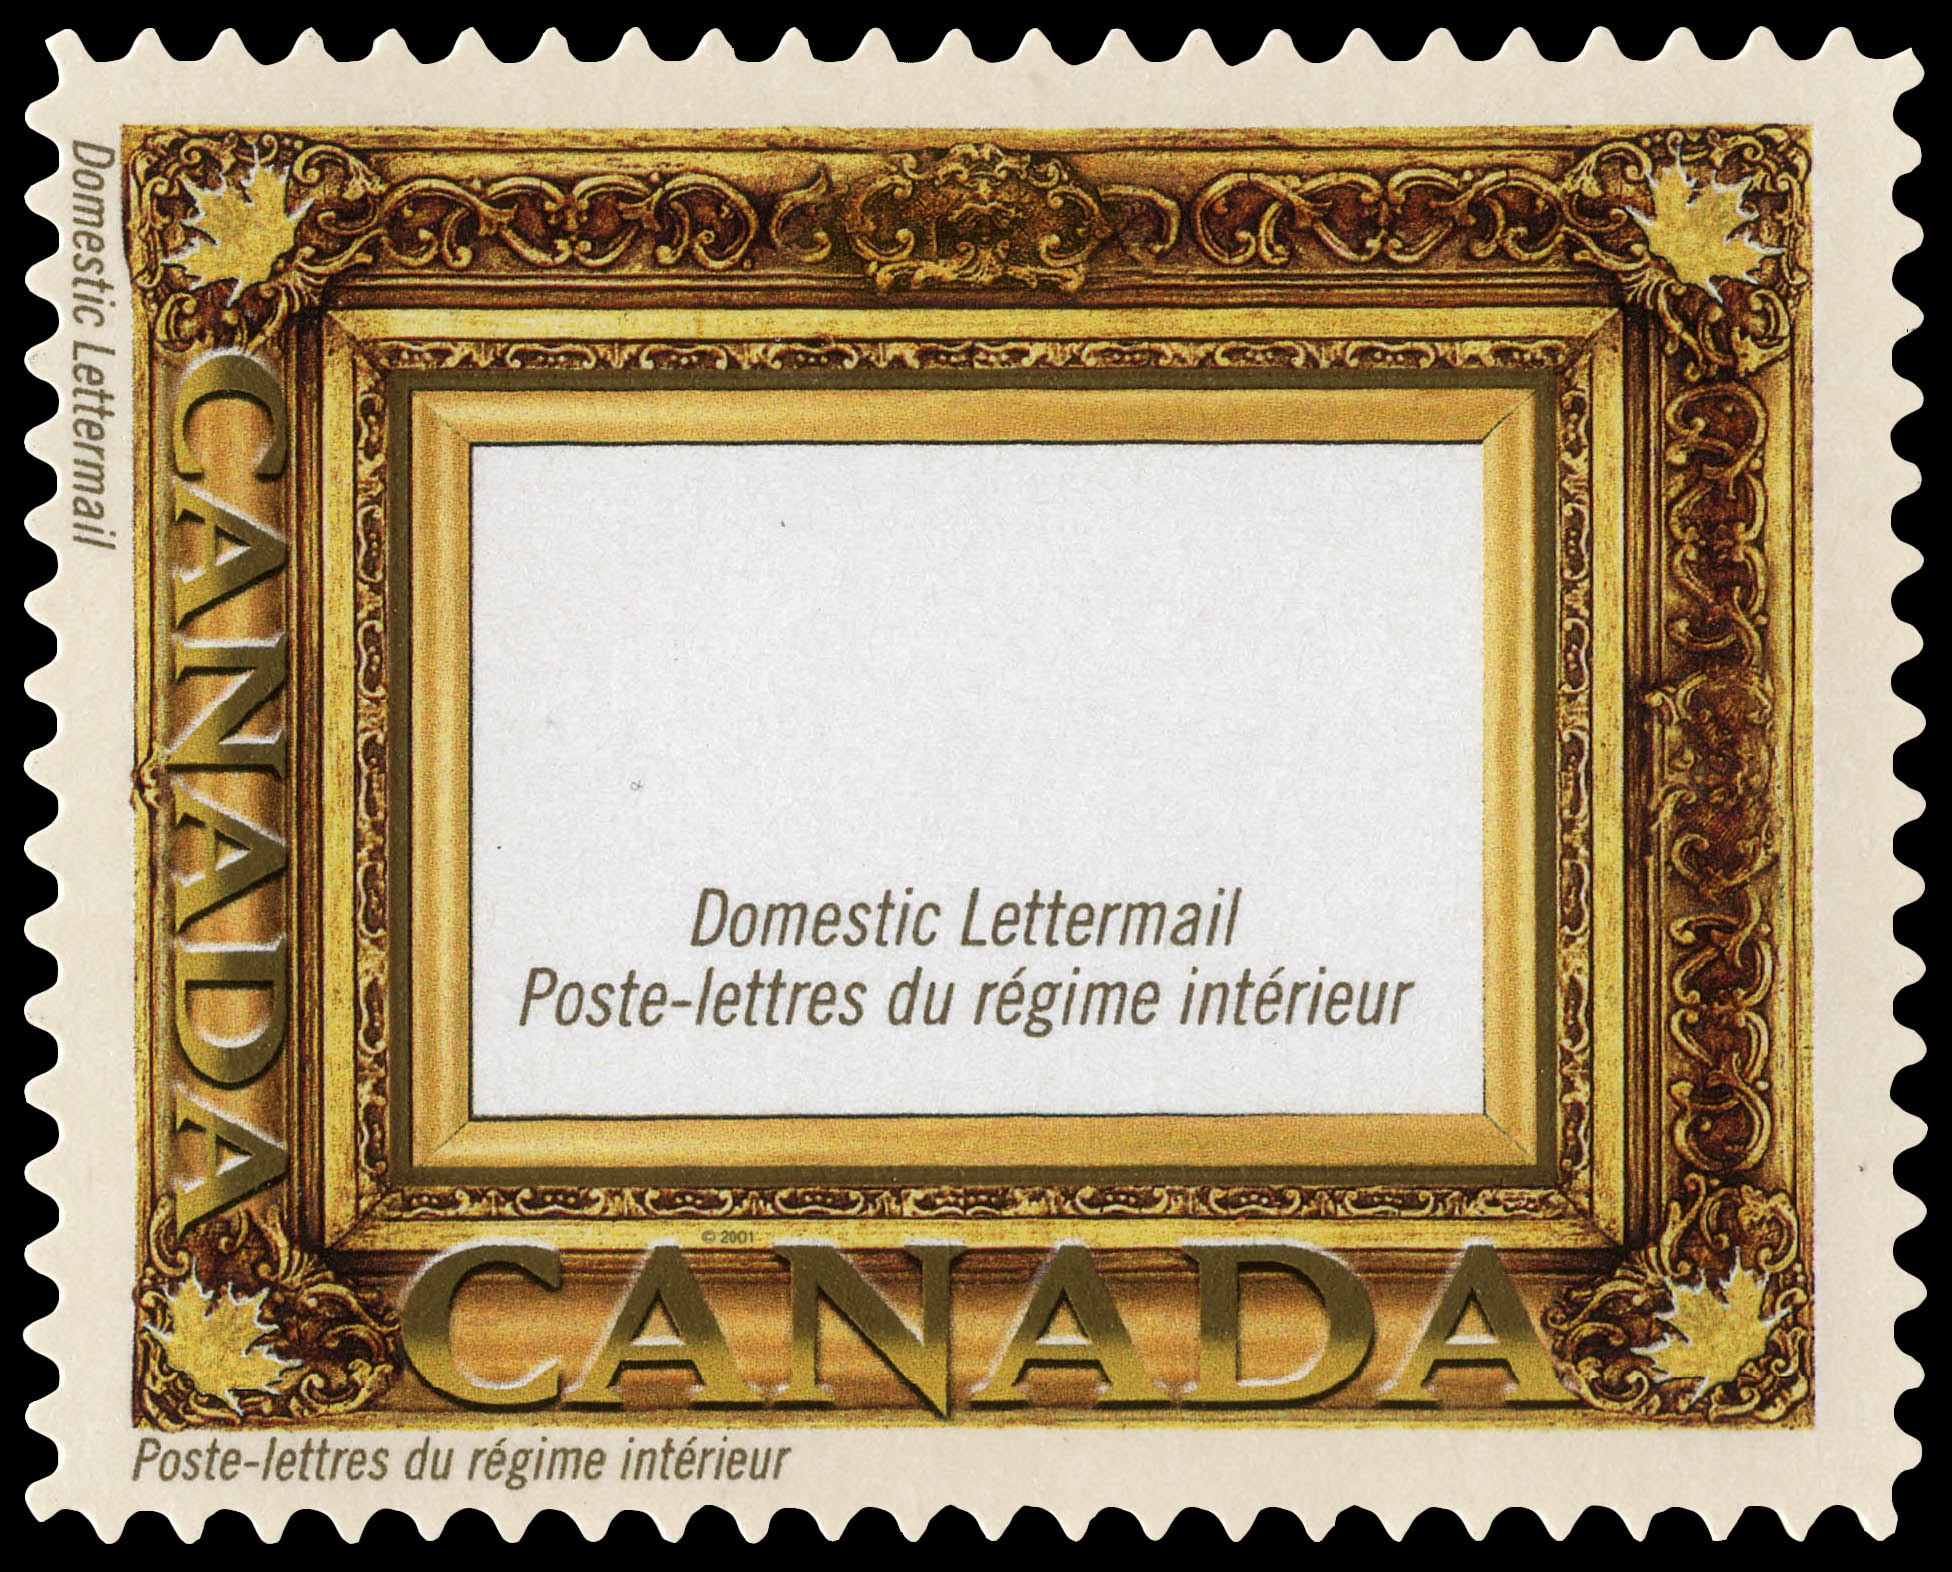 Gold Leaf Frame - Canada Postage Stamp | Greeting Stamps